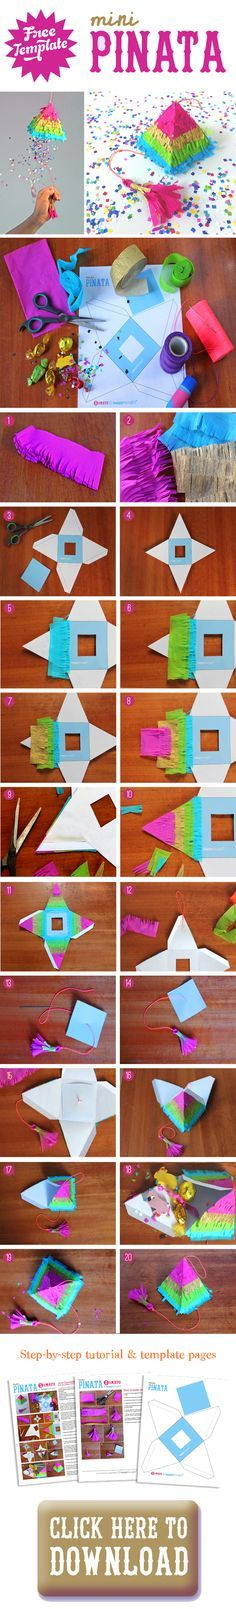 Cute mini rainbow pinata ideas for parties, classroom activities and homeschool…